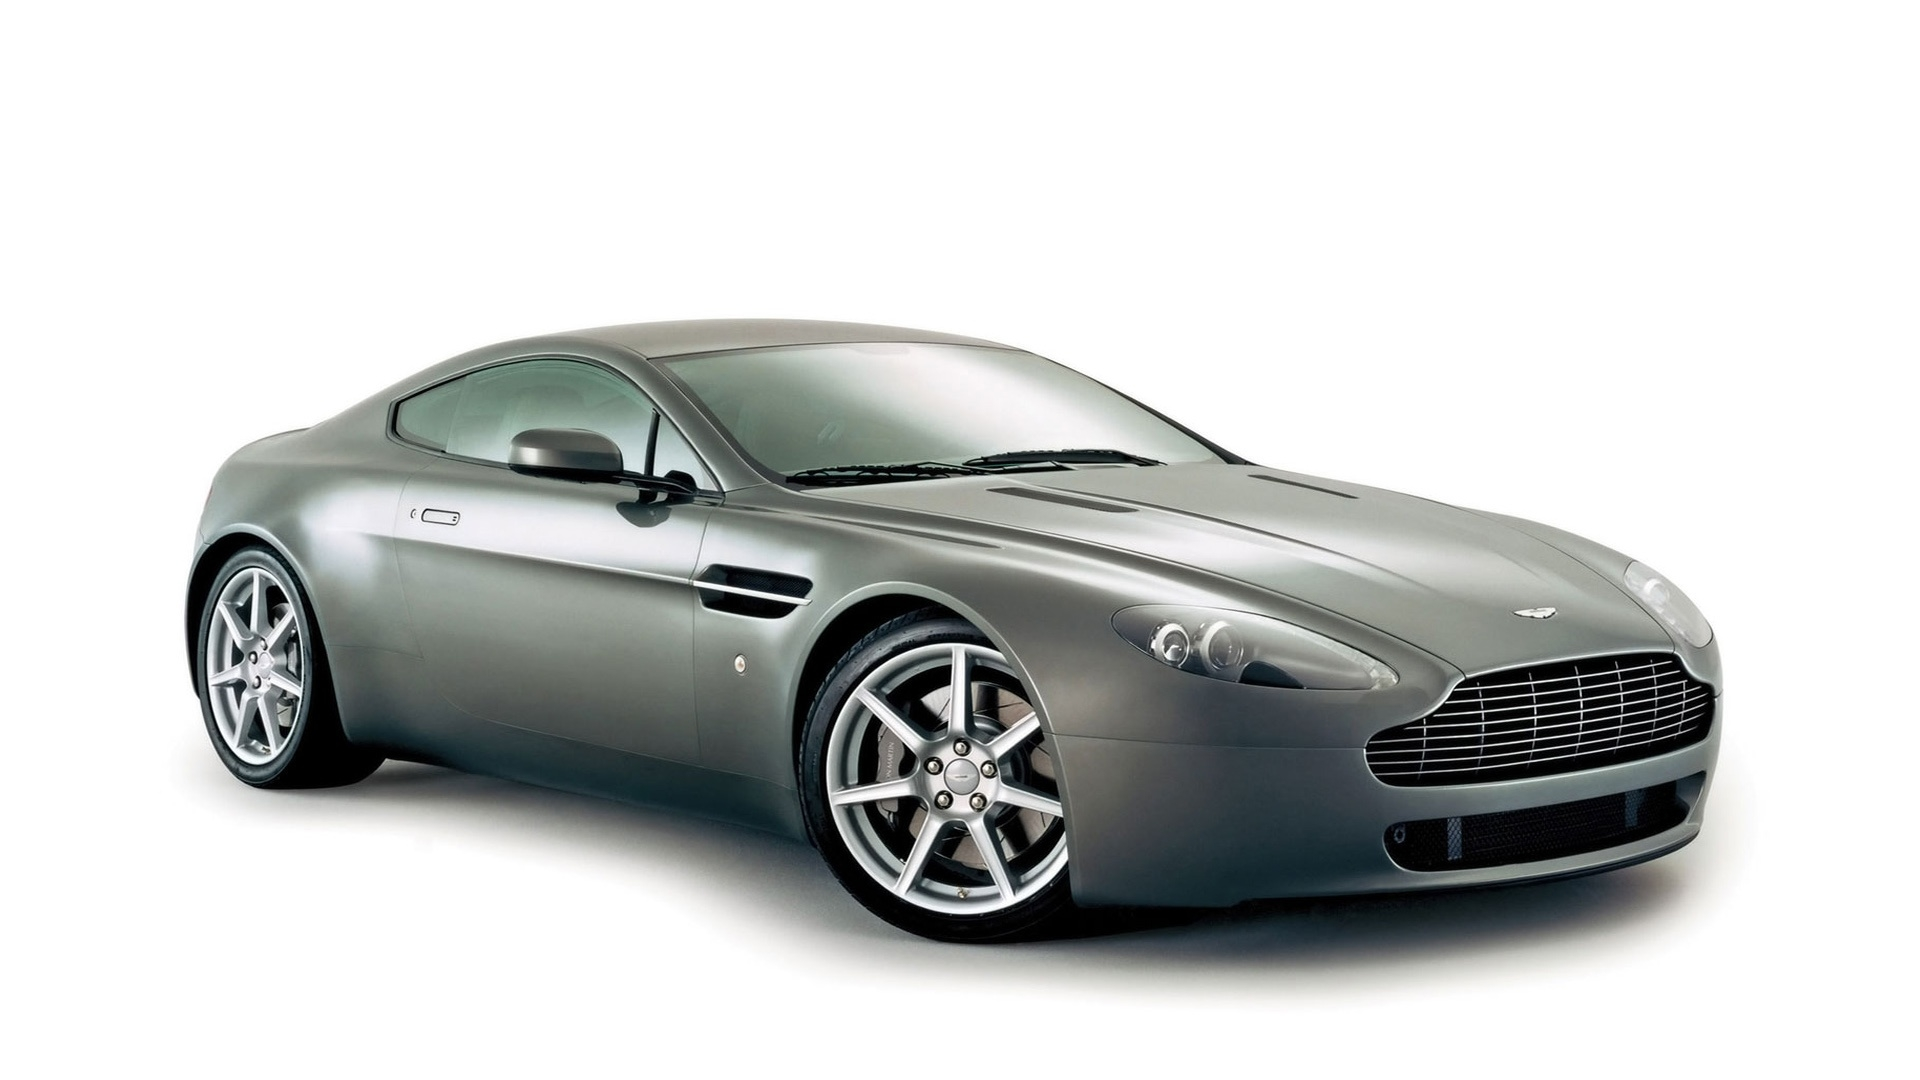 Aston Martin Vantage Side   High Definition Wallpapers   HD wallpapers 1920x1080